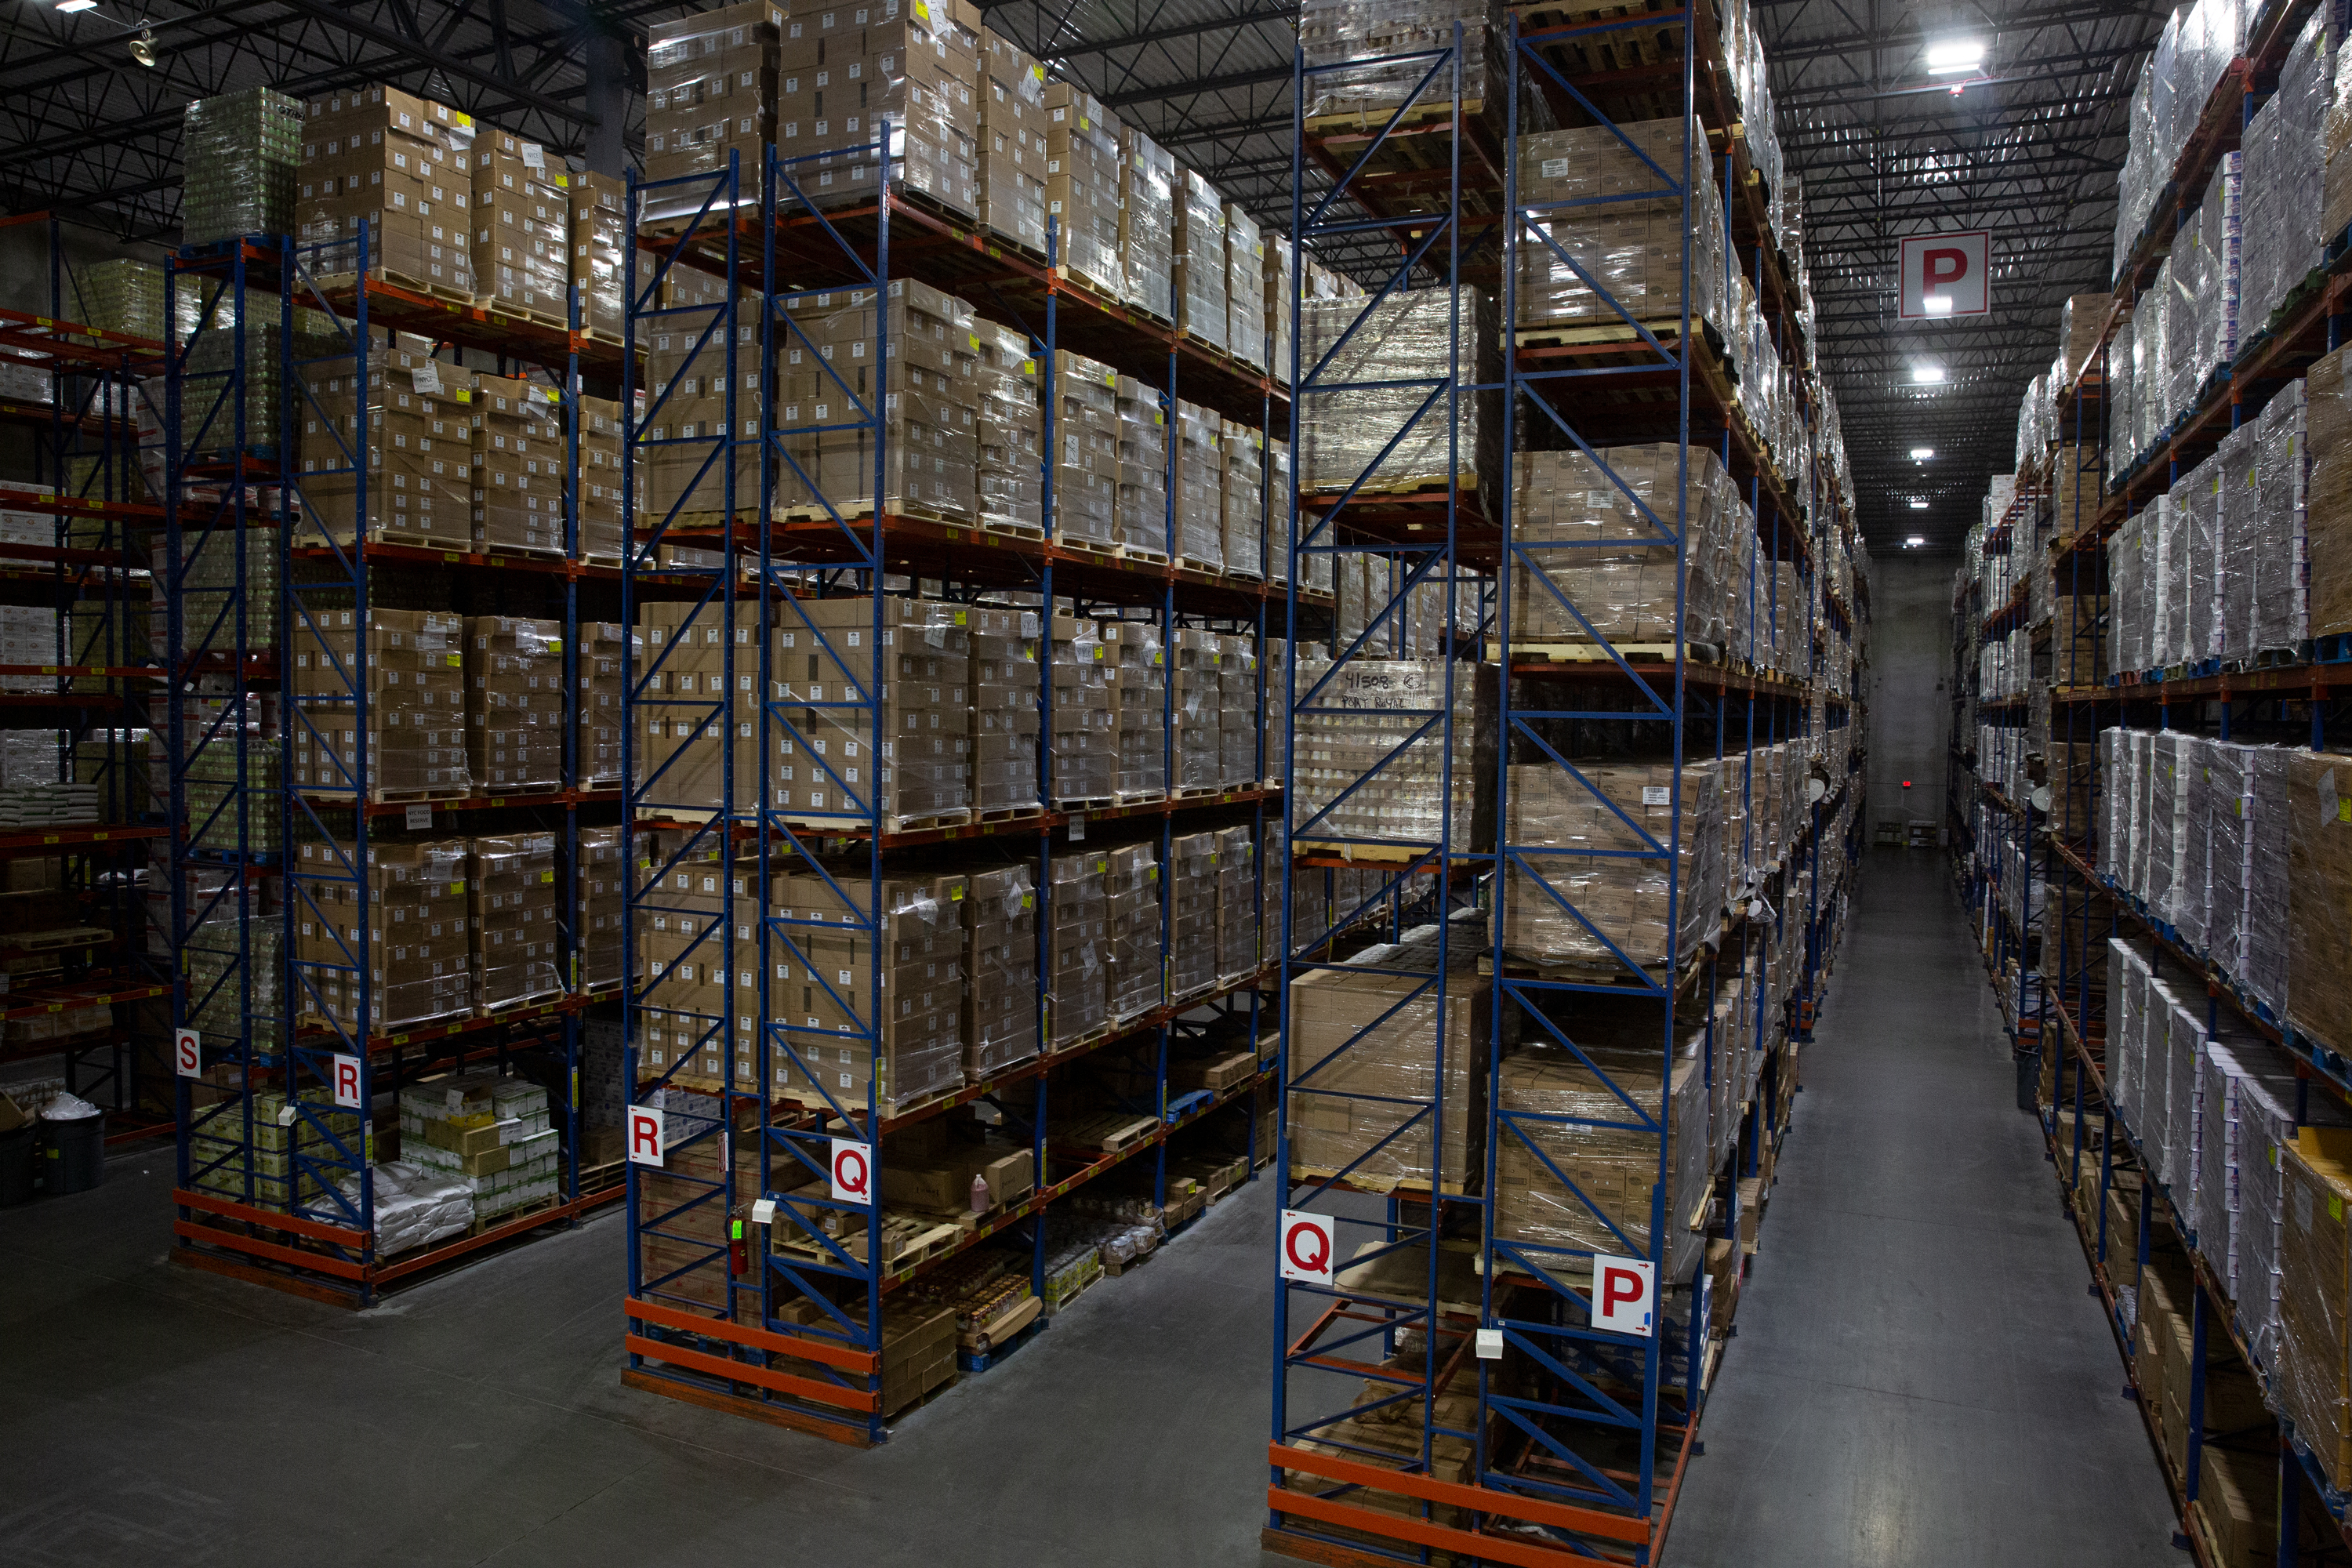 The city has stored 150000 cases of food that will be distributed to people throughout nonprofit organizations like Masbia in New York City and other similar organizations